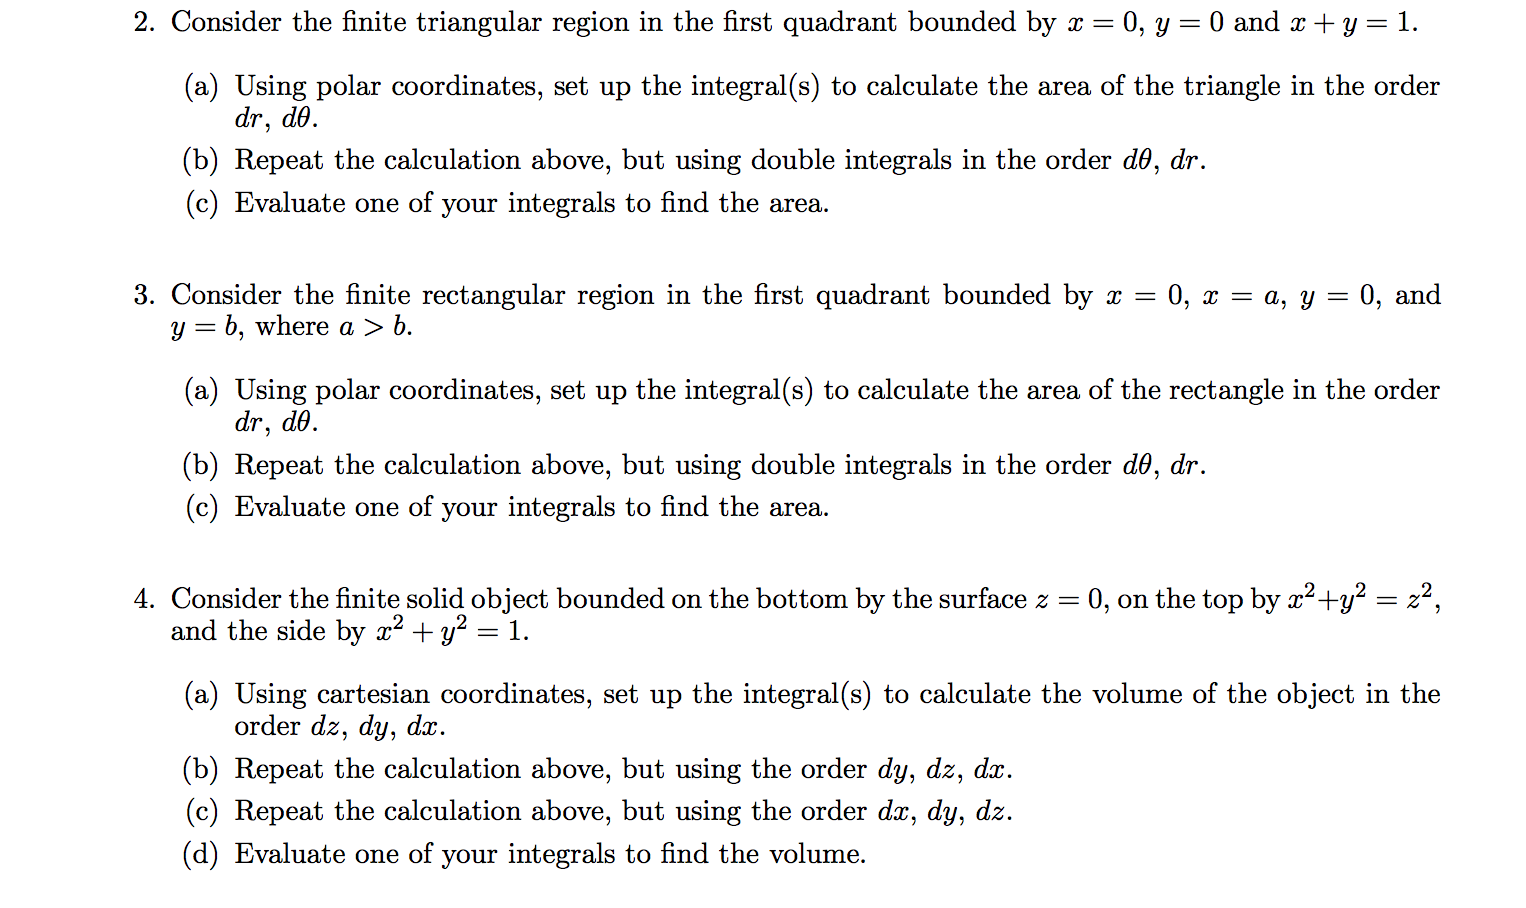 Consider The Finite Triangular Region In The First Quadrant Bounded By X =  0, Y